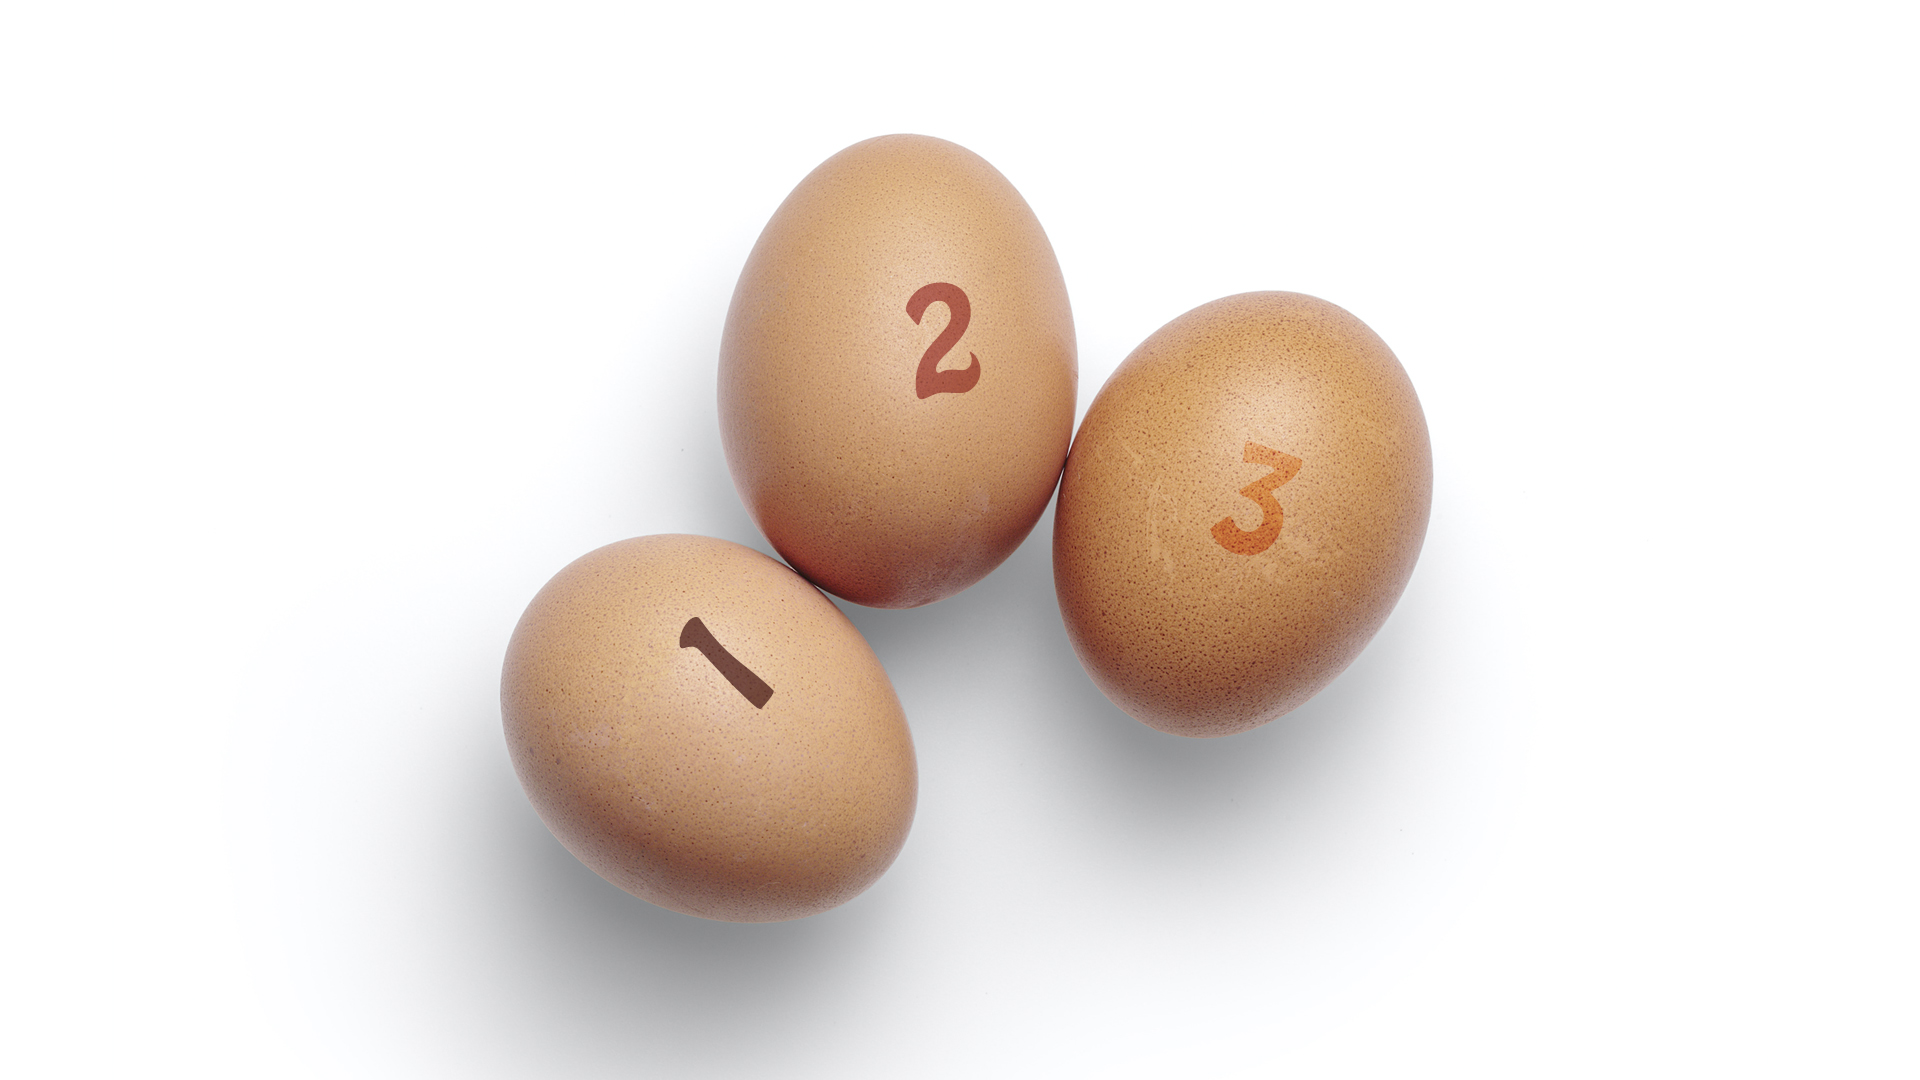 Have you counted your COVID-19 blessings? Eggs on a white background numbered 1,2,3